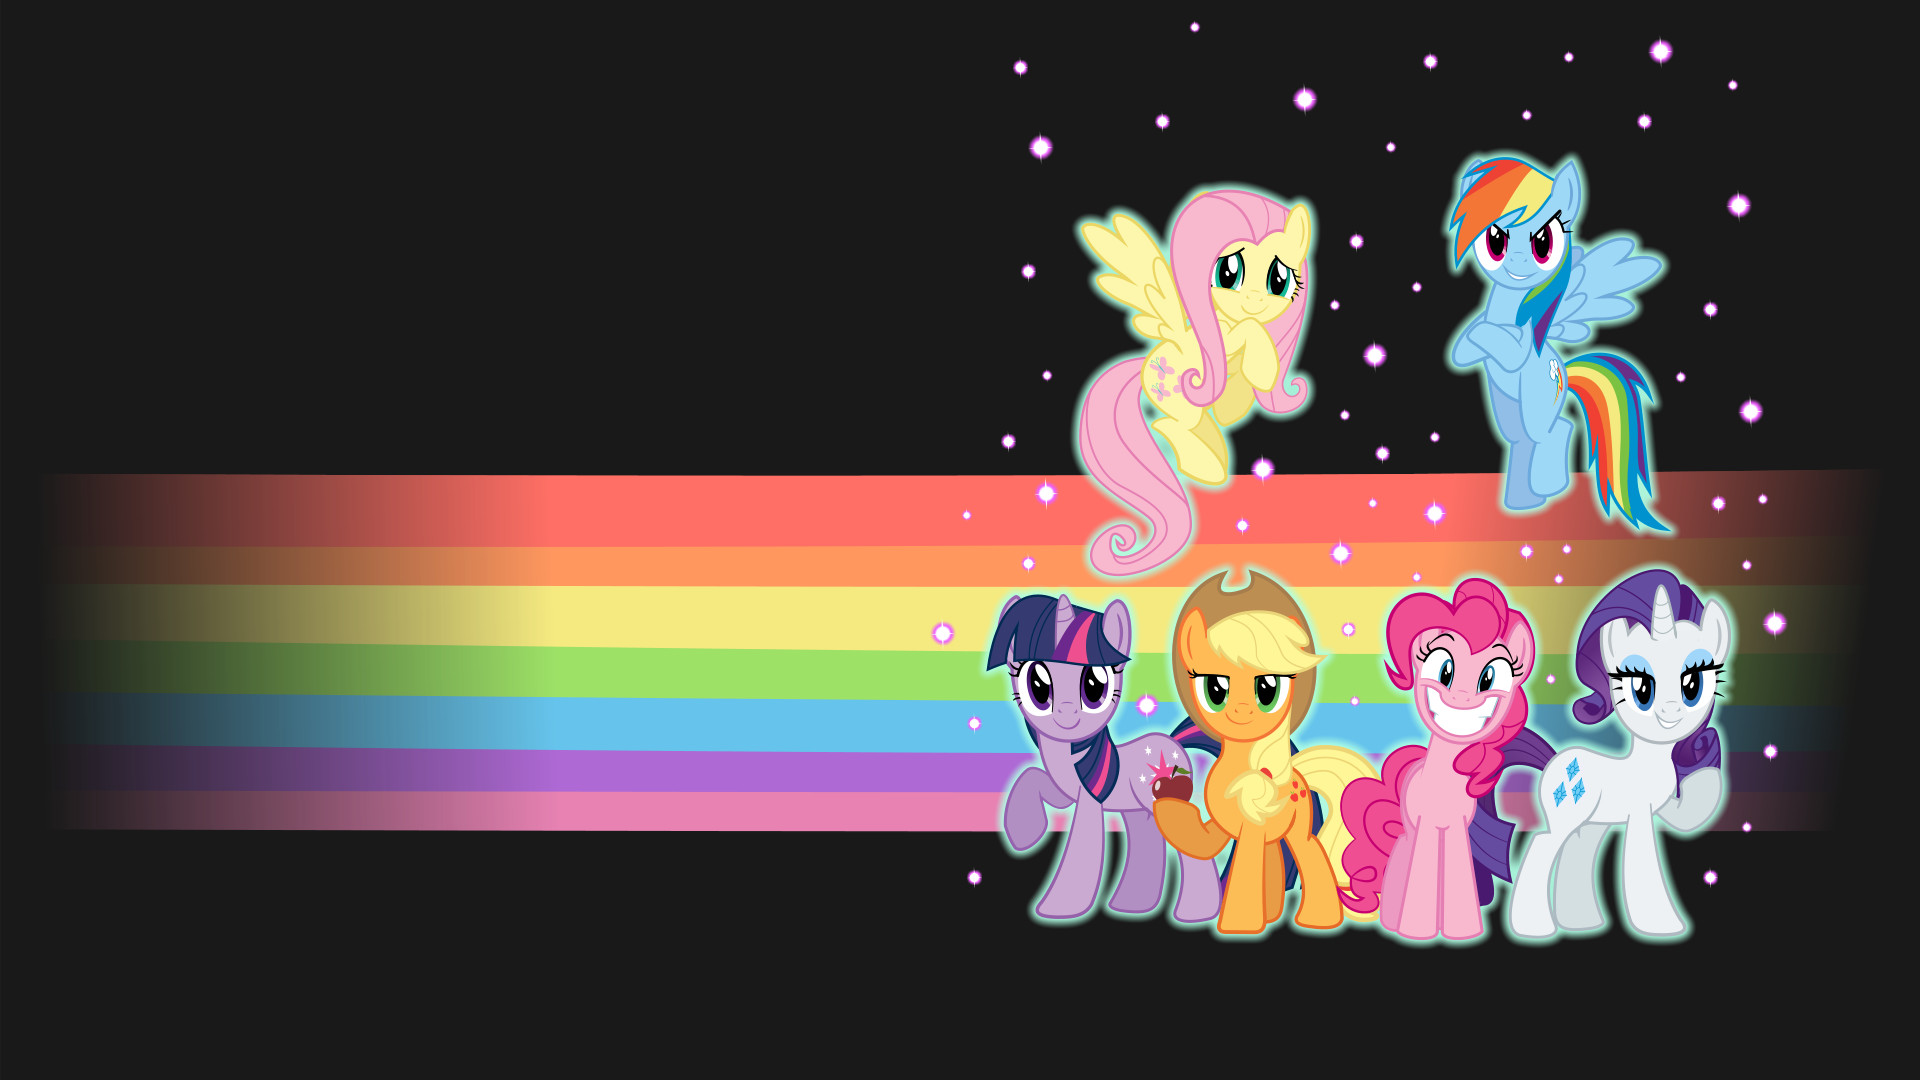 wallpaper pony 85 images